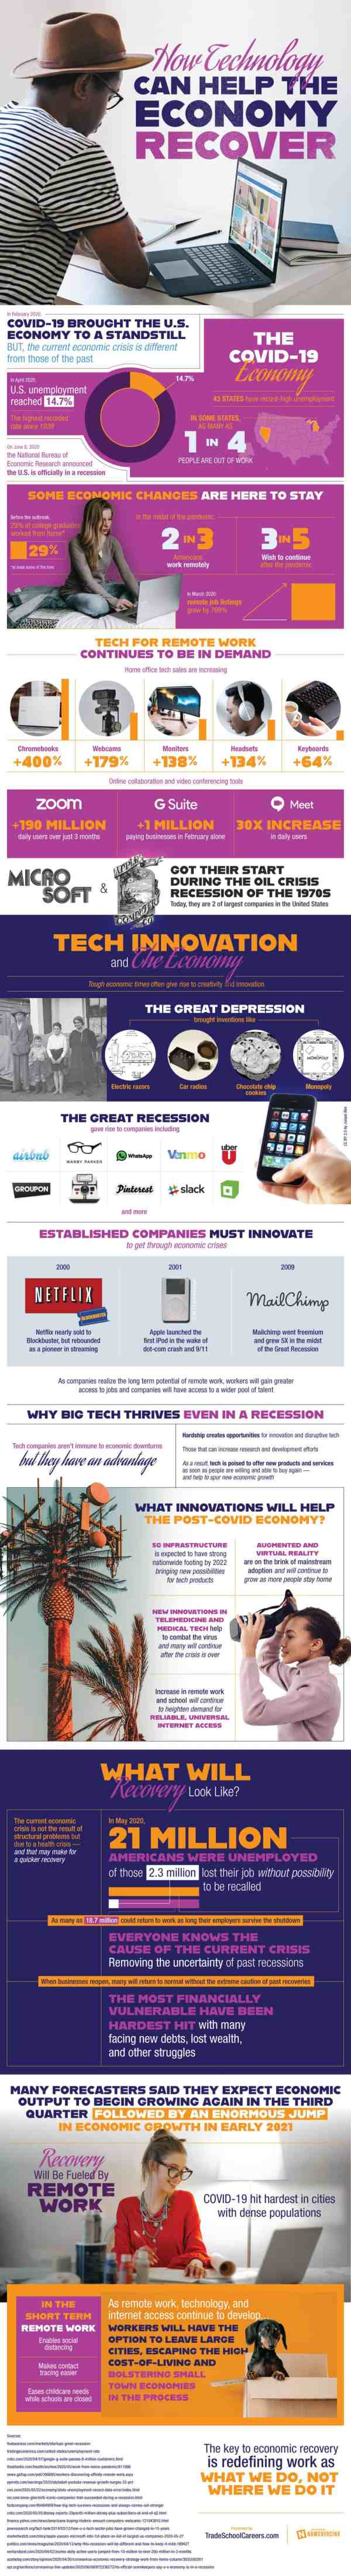 How Technology Will The Economy Recover